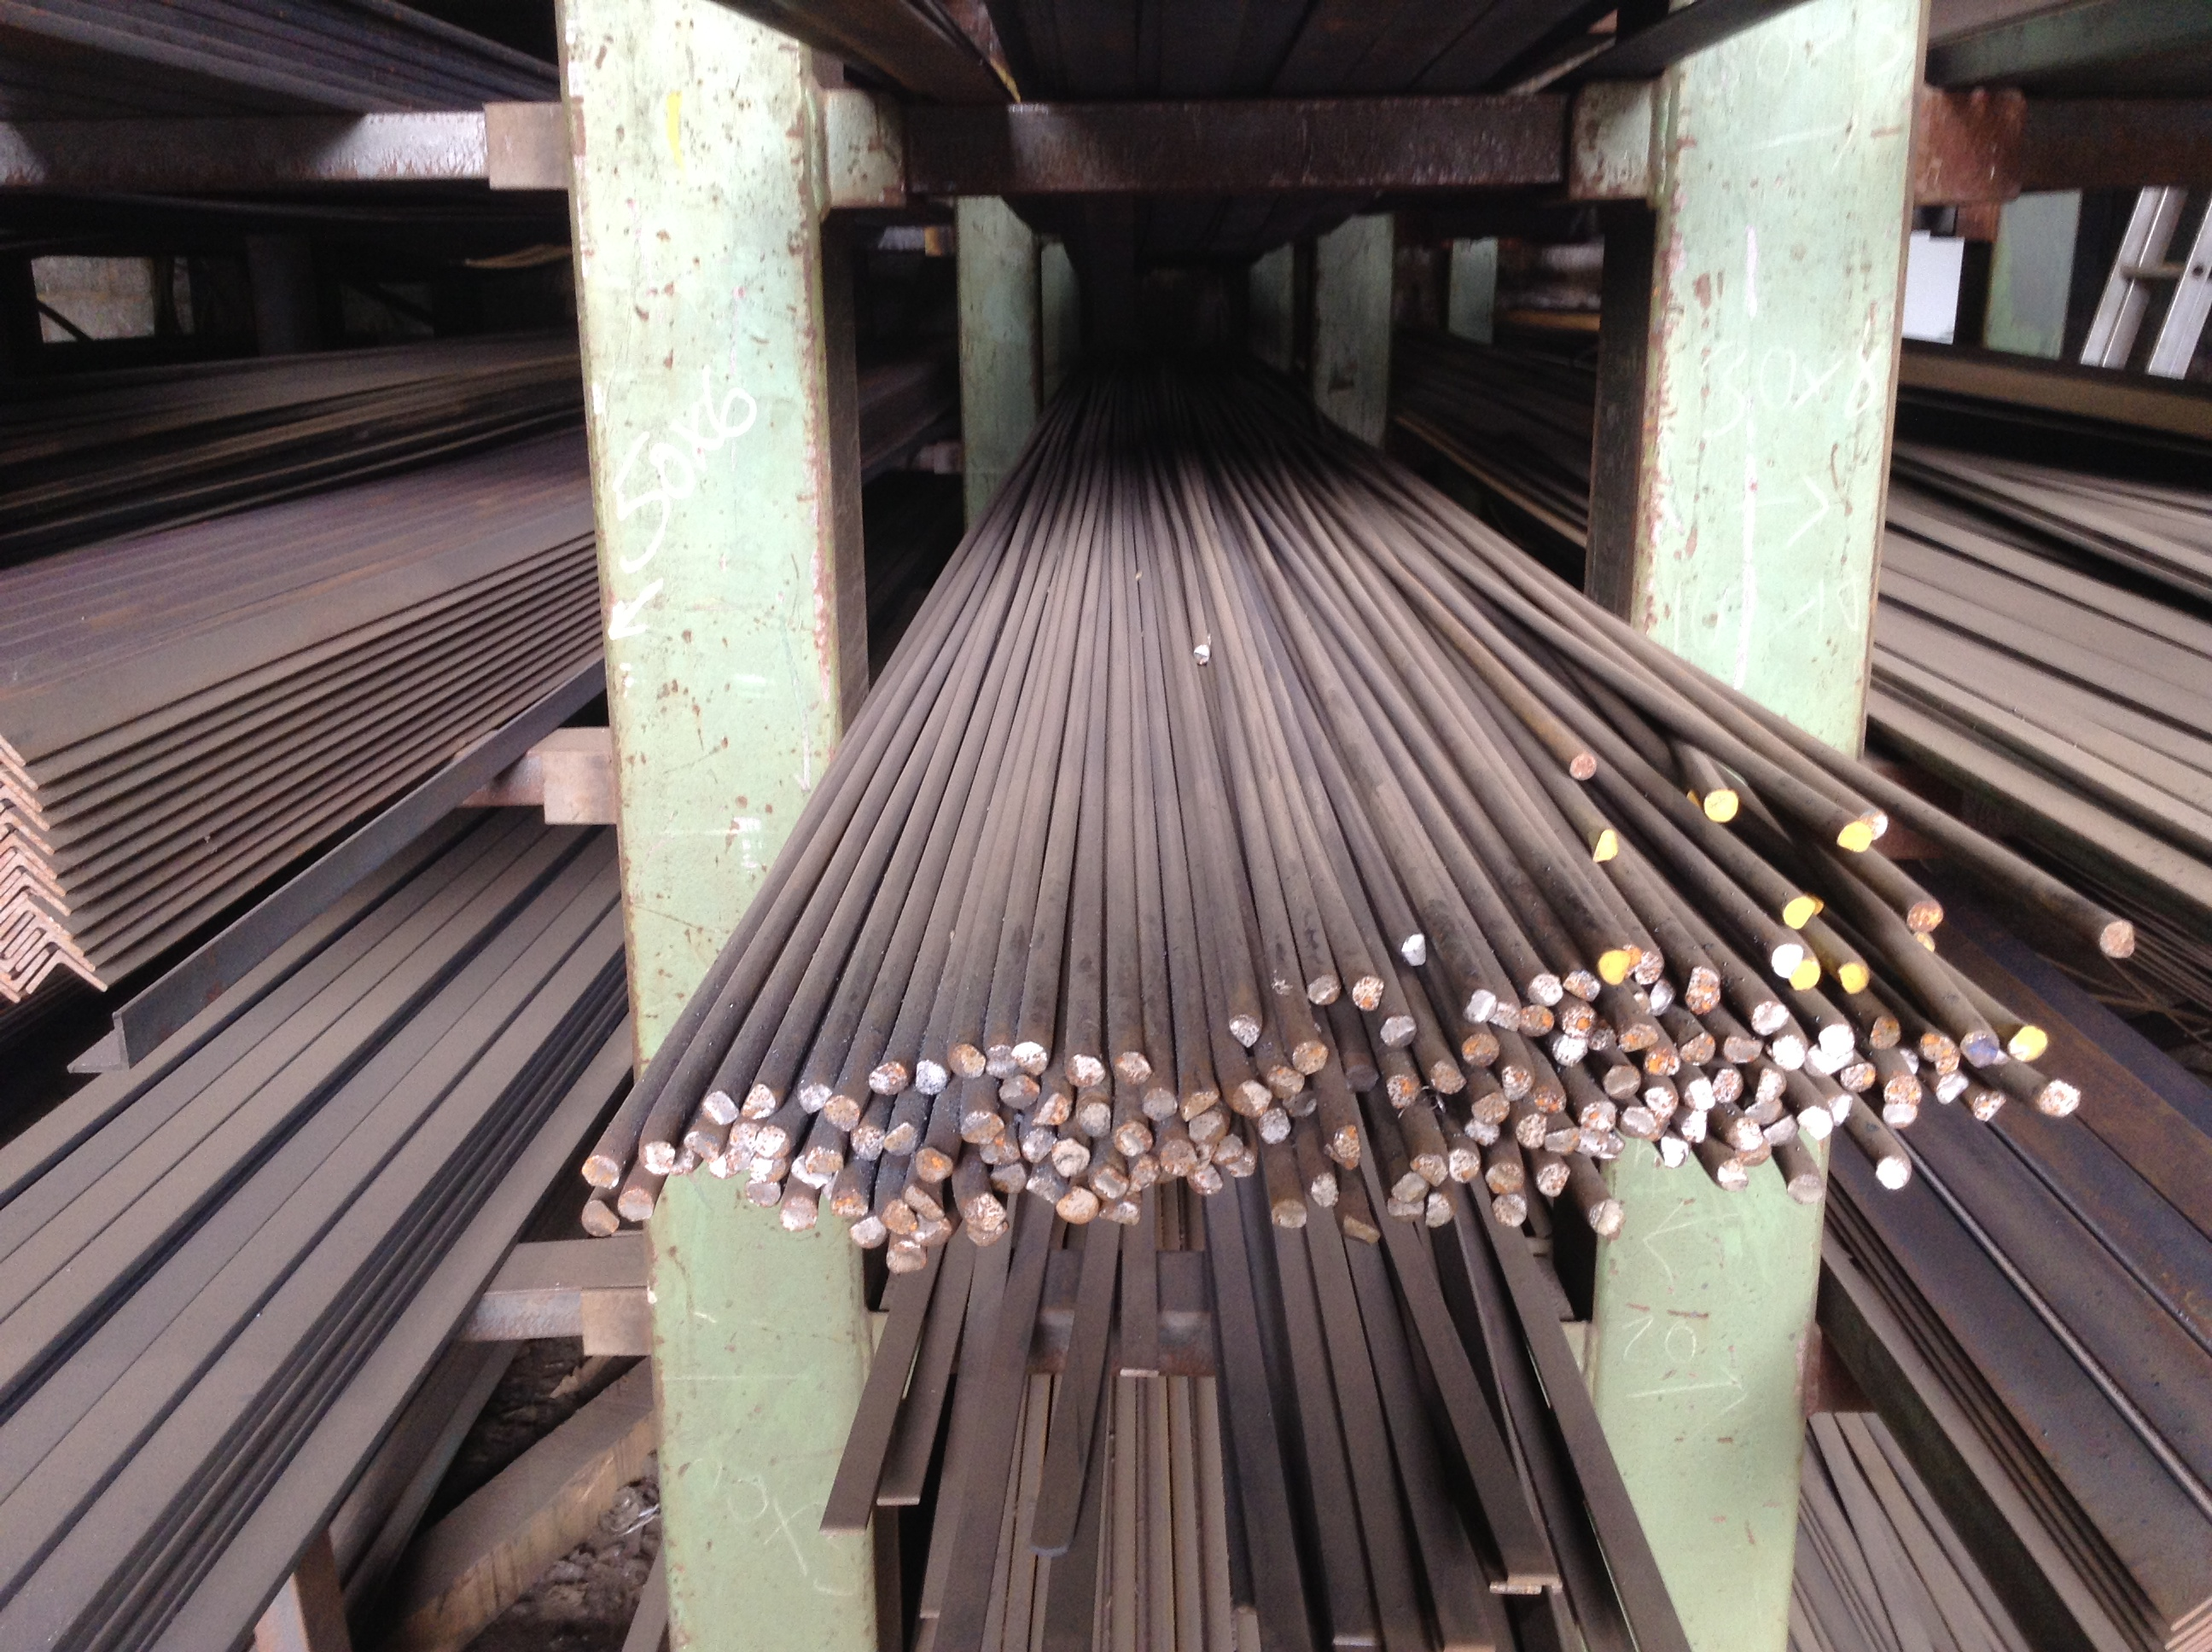 1 650 100mm Mild Steel Solid Round Bar From Ainscough Metals